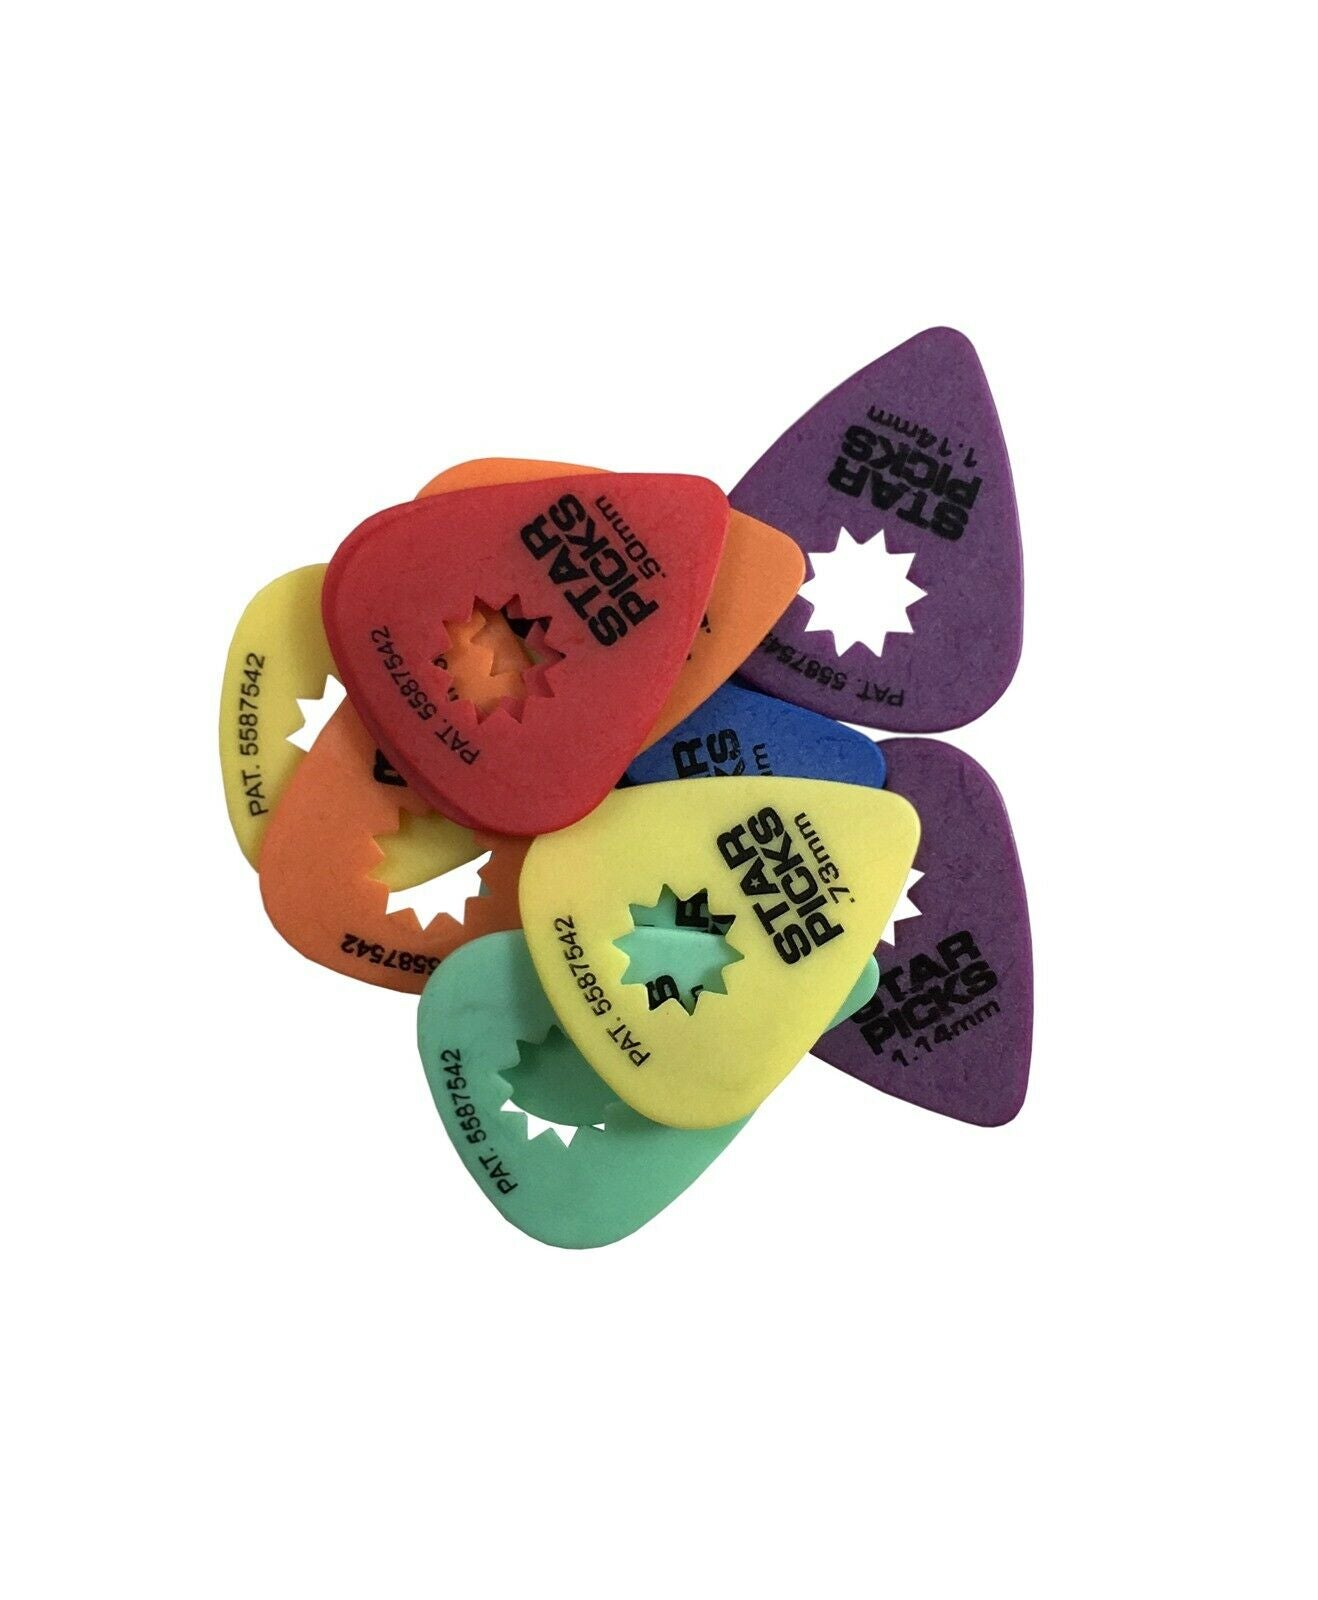 Everly Star Guitar Picks 12 Pack Variety Pack Two of Each Size.